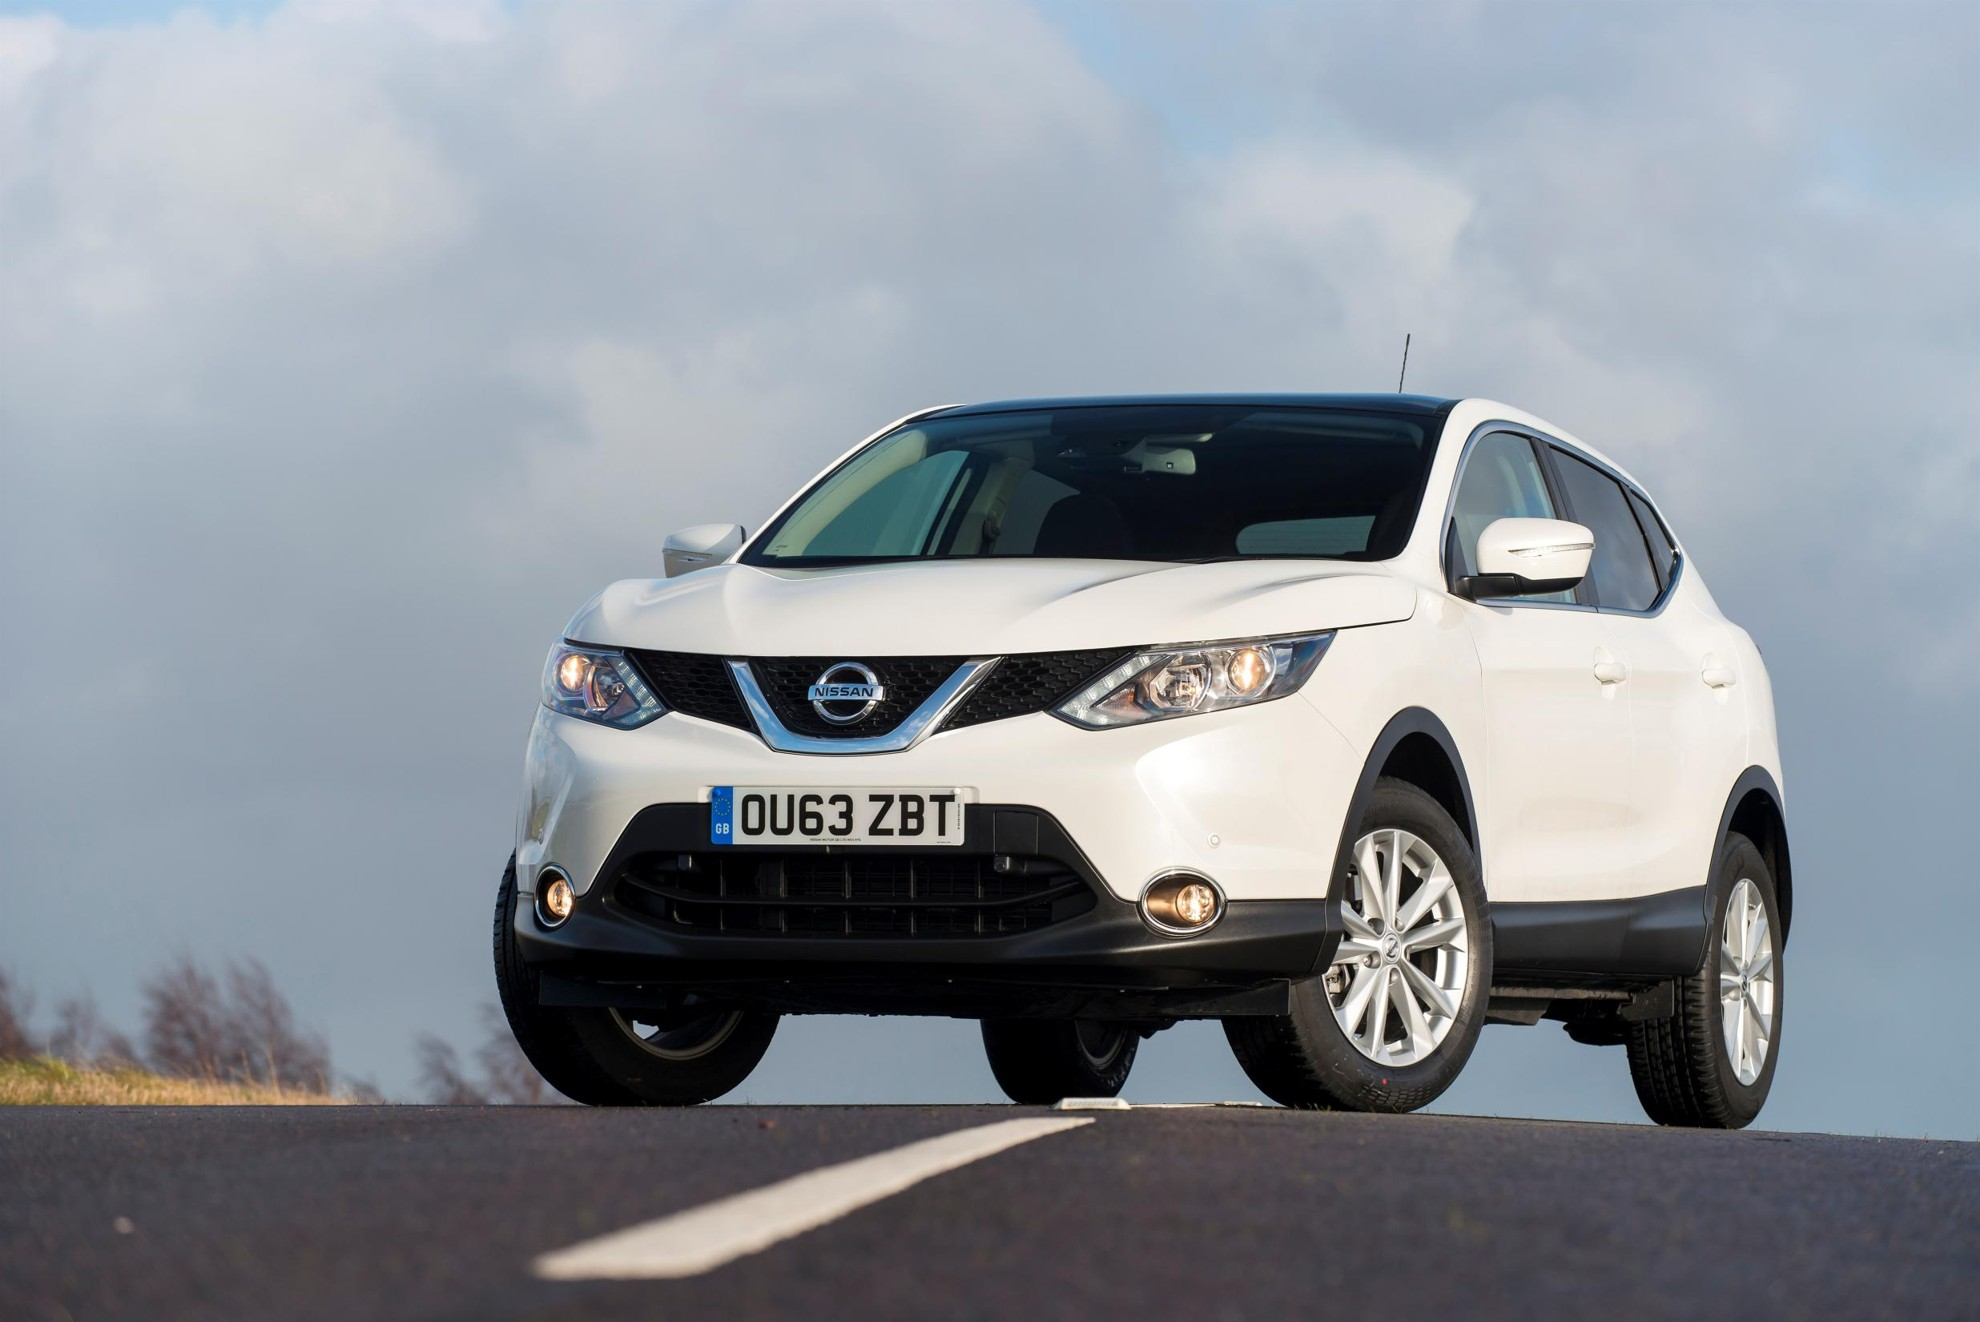 Nissan's new Qashqai presents an even more compelling business case